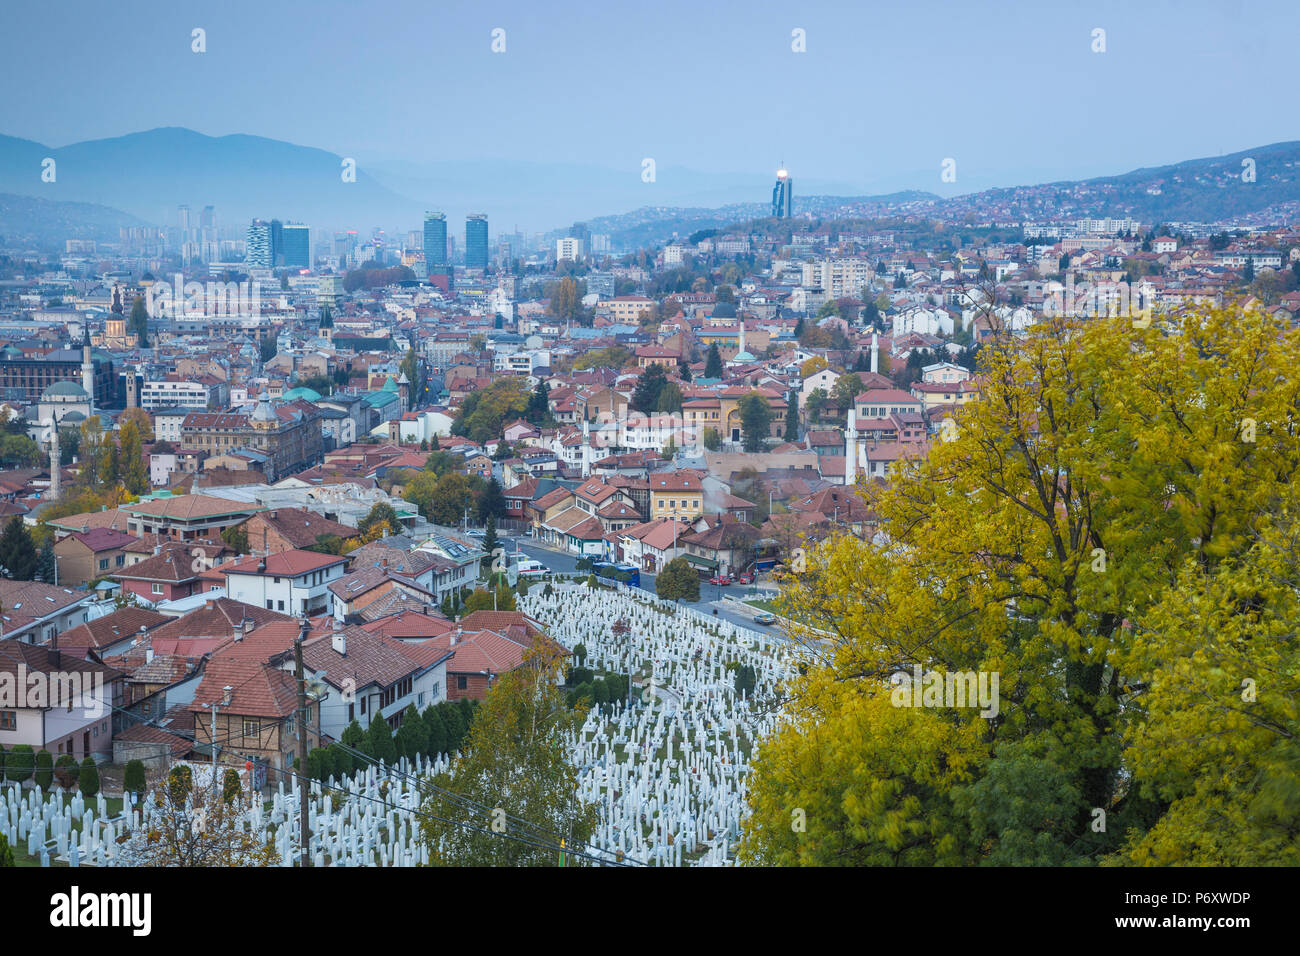 Bosnia and Herzegovina, Sarajevo, View over Kovaci War Memorial and Cemetery to the City - Stock Image